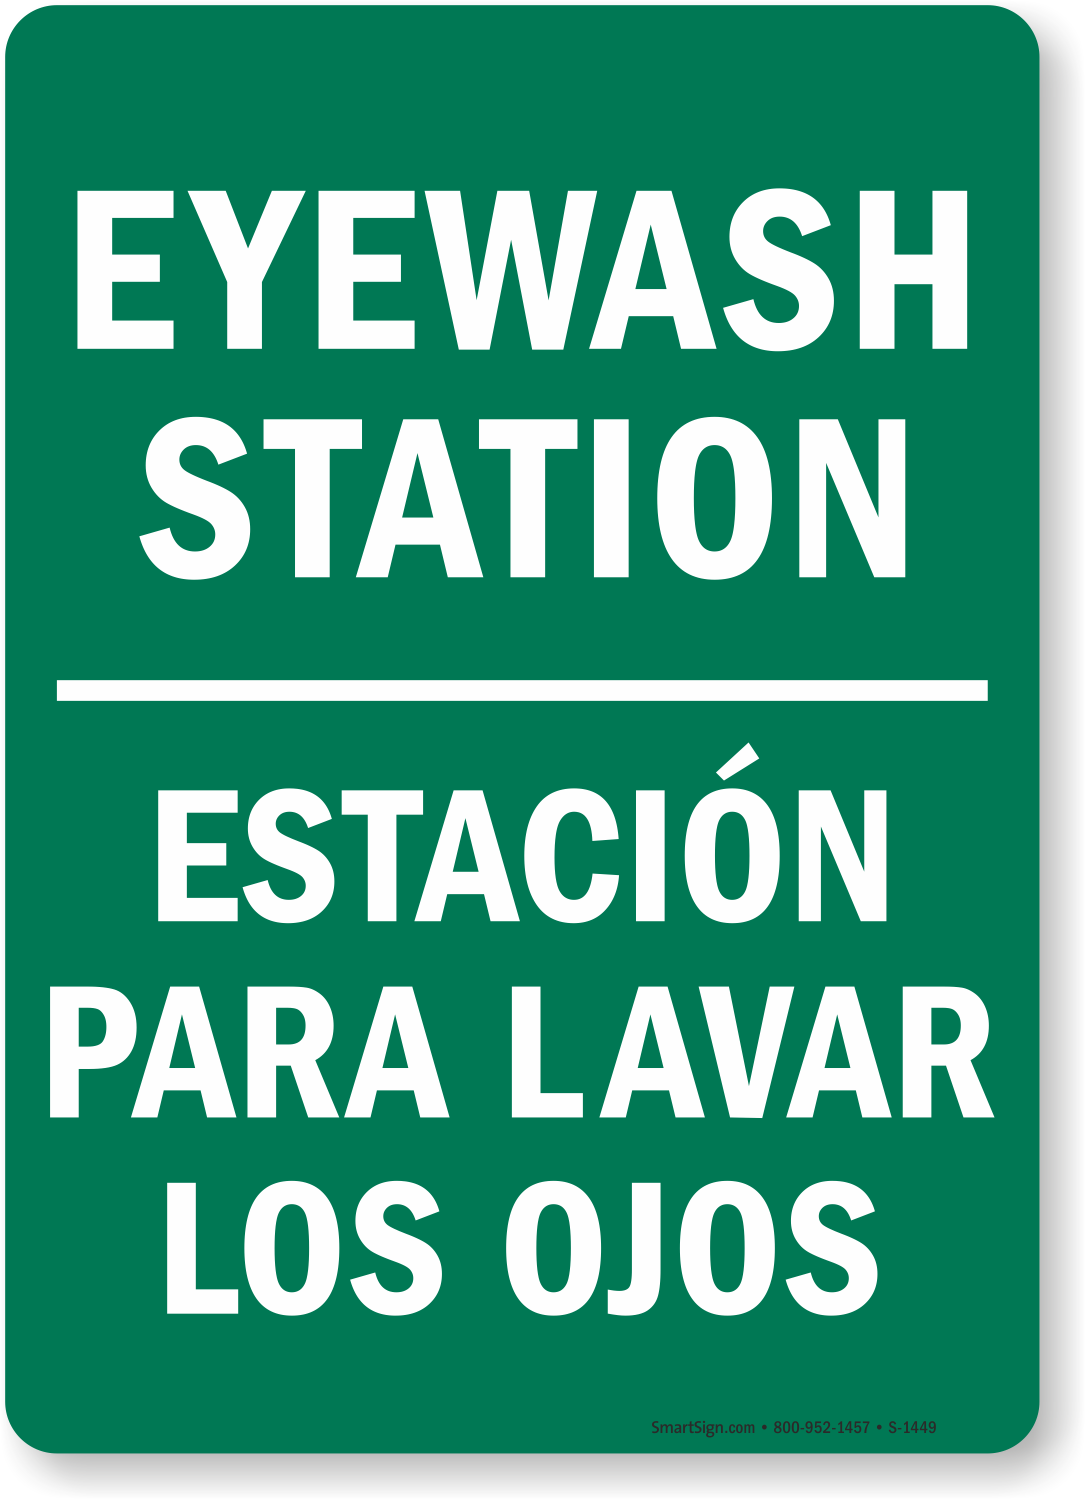 eyewash station sign bilingual - Eye Wash Station Osha